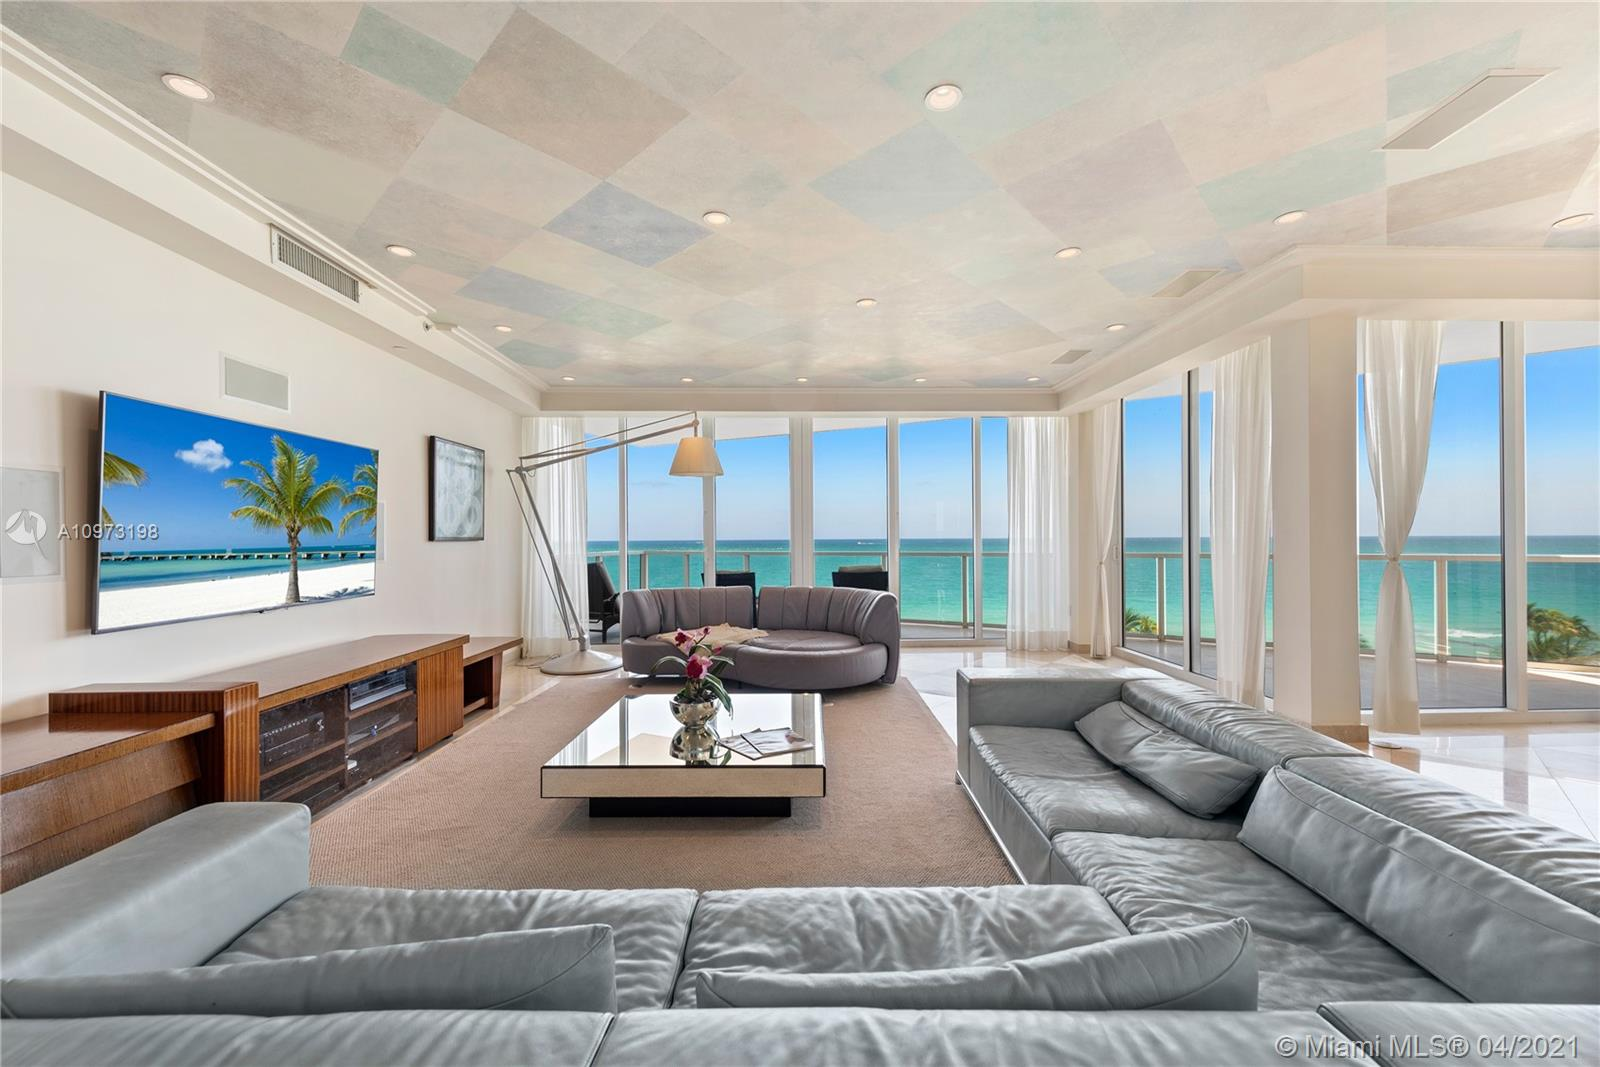 With over 6,000 sq ft, 6 bedrooms, 2 staff's quarters, 9.5 baths, this property represents a rare opportunity ideal for a large family. Special features include 10-ft ceilings throughout, a massive oceanfront master suite with his and her bathrooms and large walk in closets, VIP guest suite, an expansive oceanfront living room with sunrise views, massive Poggenpohl kitchen with breakfast area, large bay facing club room with separate chef kitchen/bar and sunset views. Located in world renowned Bal Harbour, directly on the beach, the Bellini is a luxurious boutique full service building with private restaurant, gym and spa. Contact the listing agent to show with 24 hour notice.